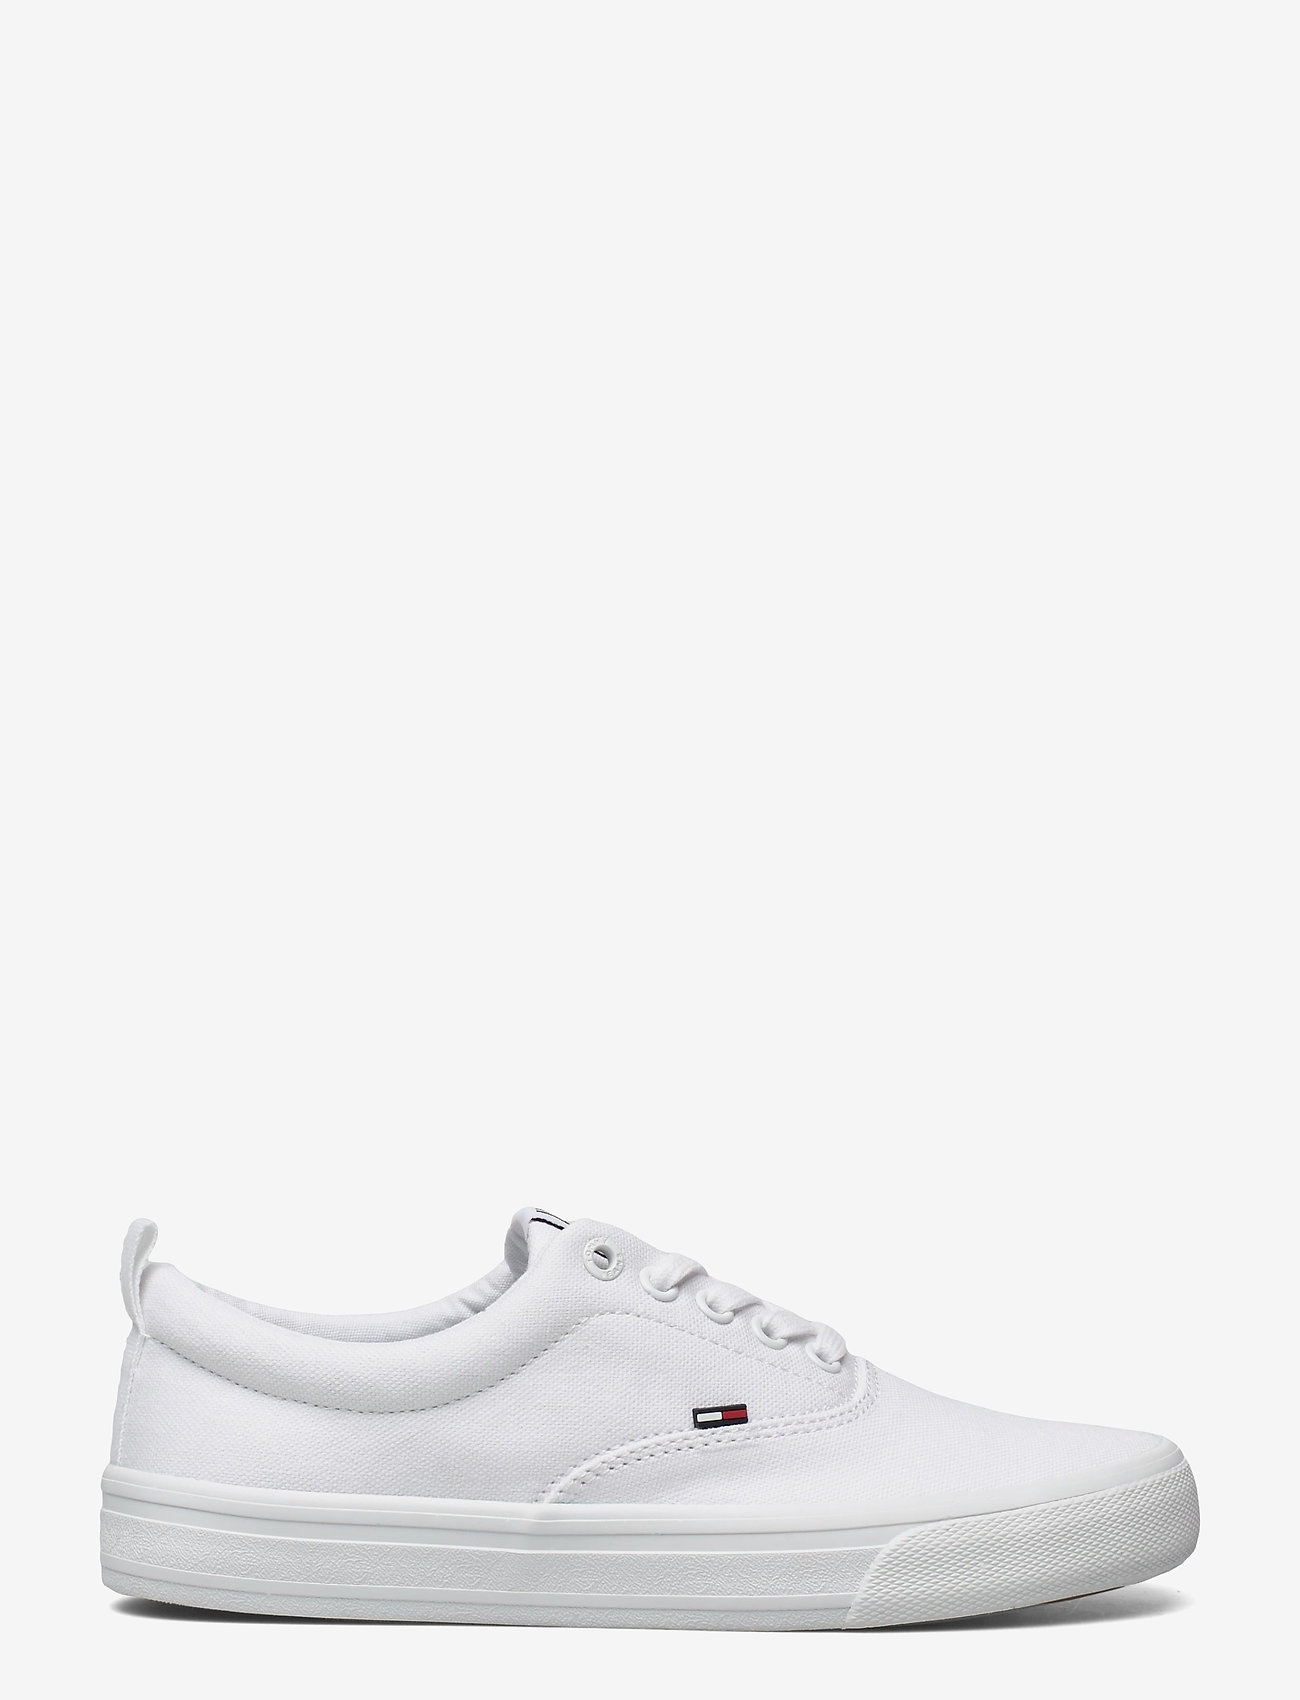 Tommy Hilfiger - WMN CLASSIC TOMMY JEANS SNEAKER - low top sneakers - white - 0